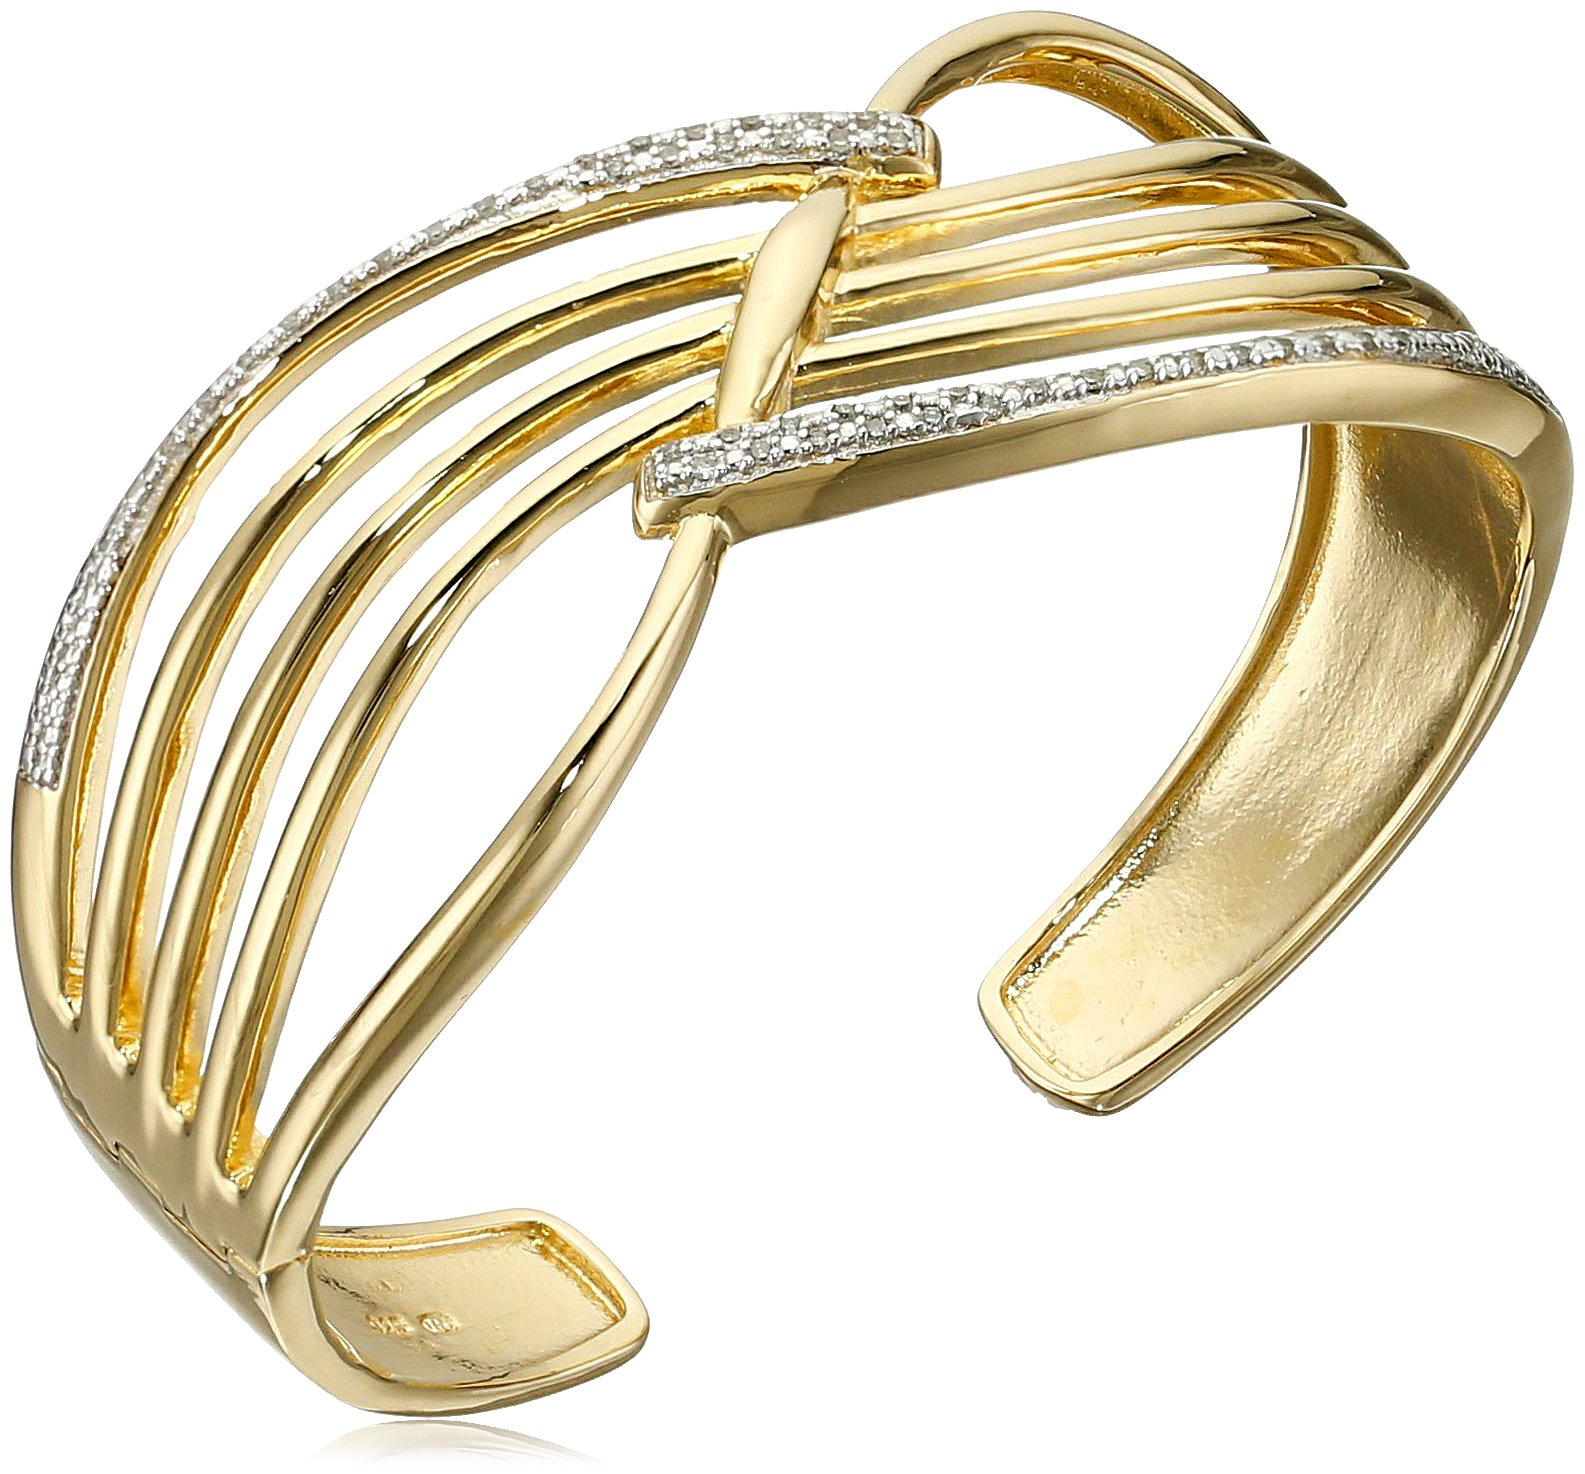 18k Yellow Gold Plated Sterling Silver Genuine Diamond Hinged Cuff Bracelet (1/4 cttw, I-J Color, I2-I3 Clarity), 7.25''